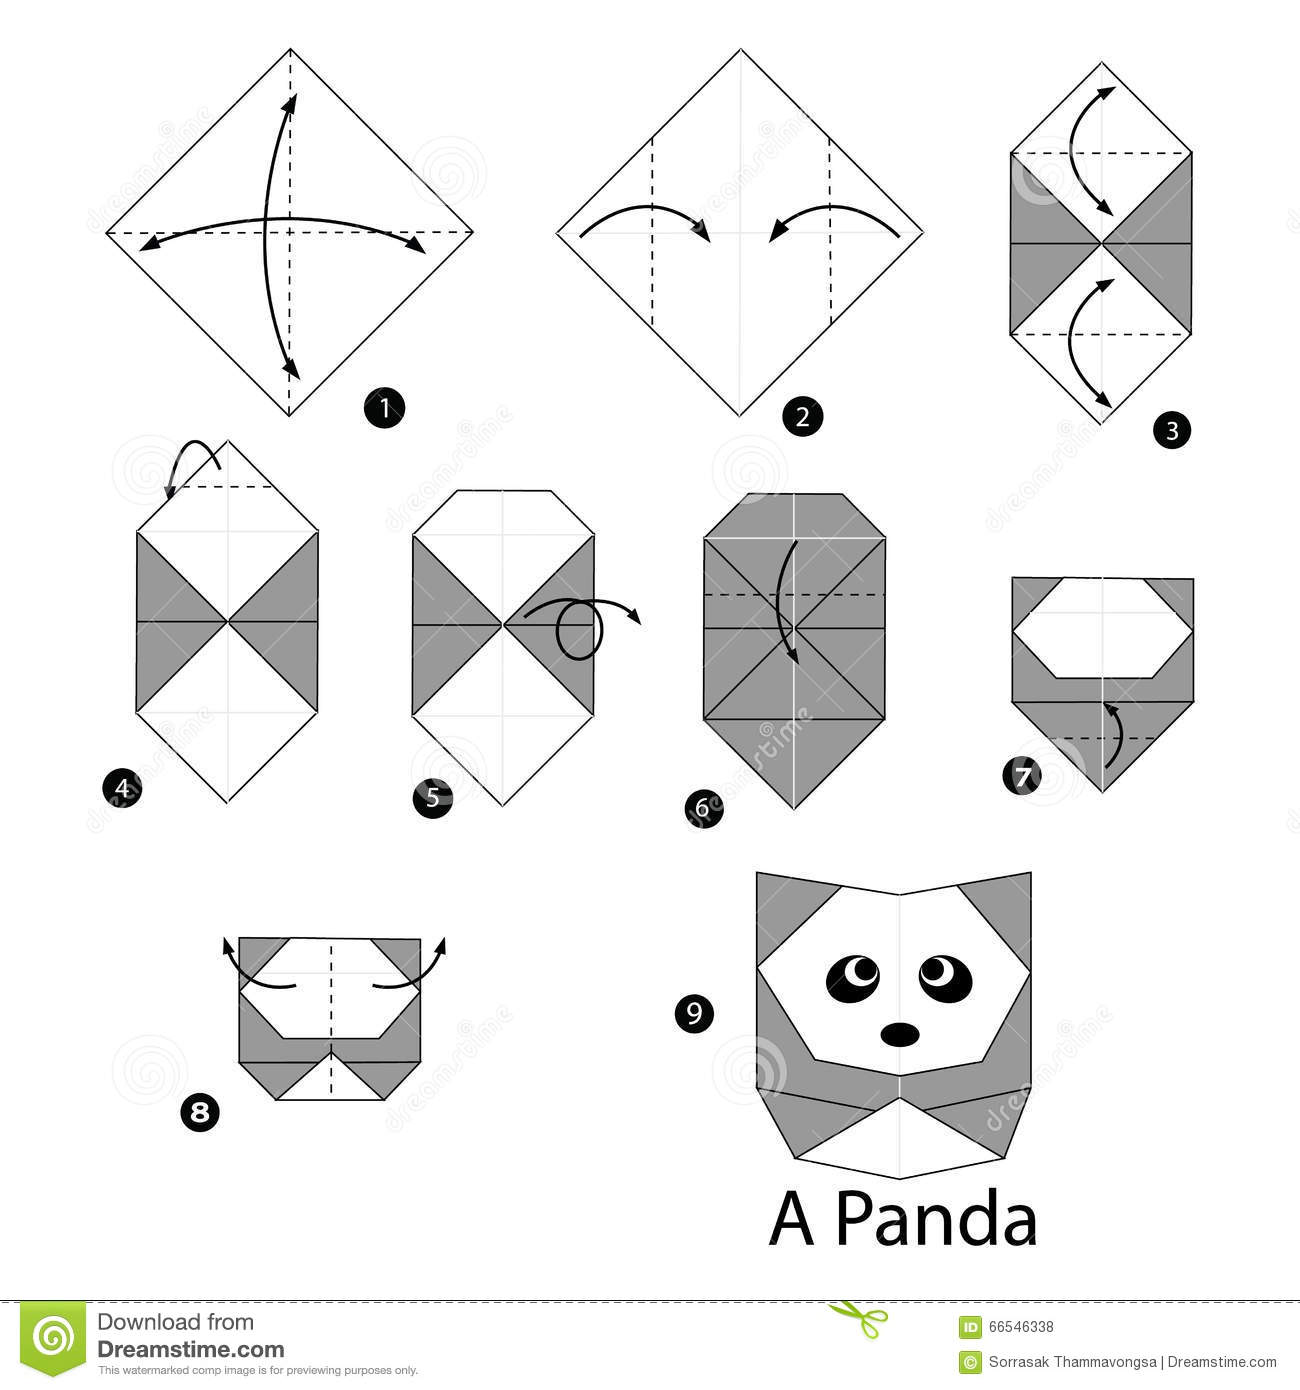 Instructions tape par tape comment faire le panda d 39 origami illustratio - Comment faire origami ...